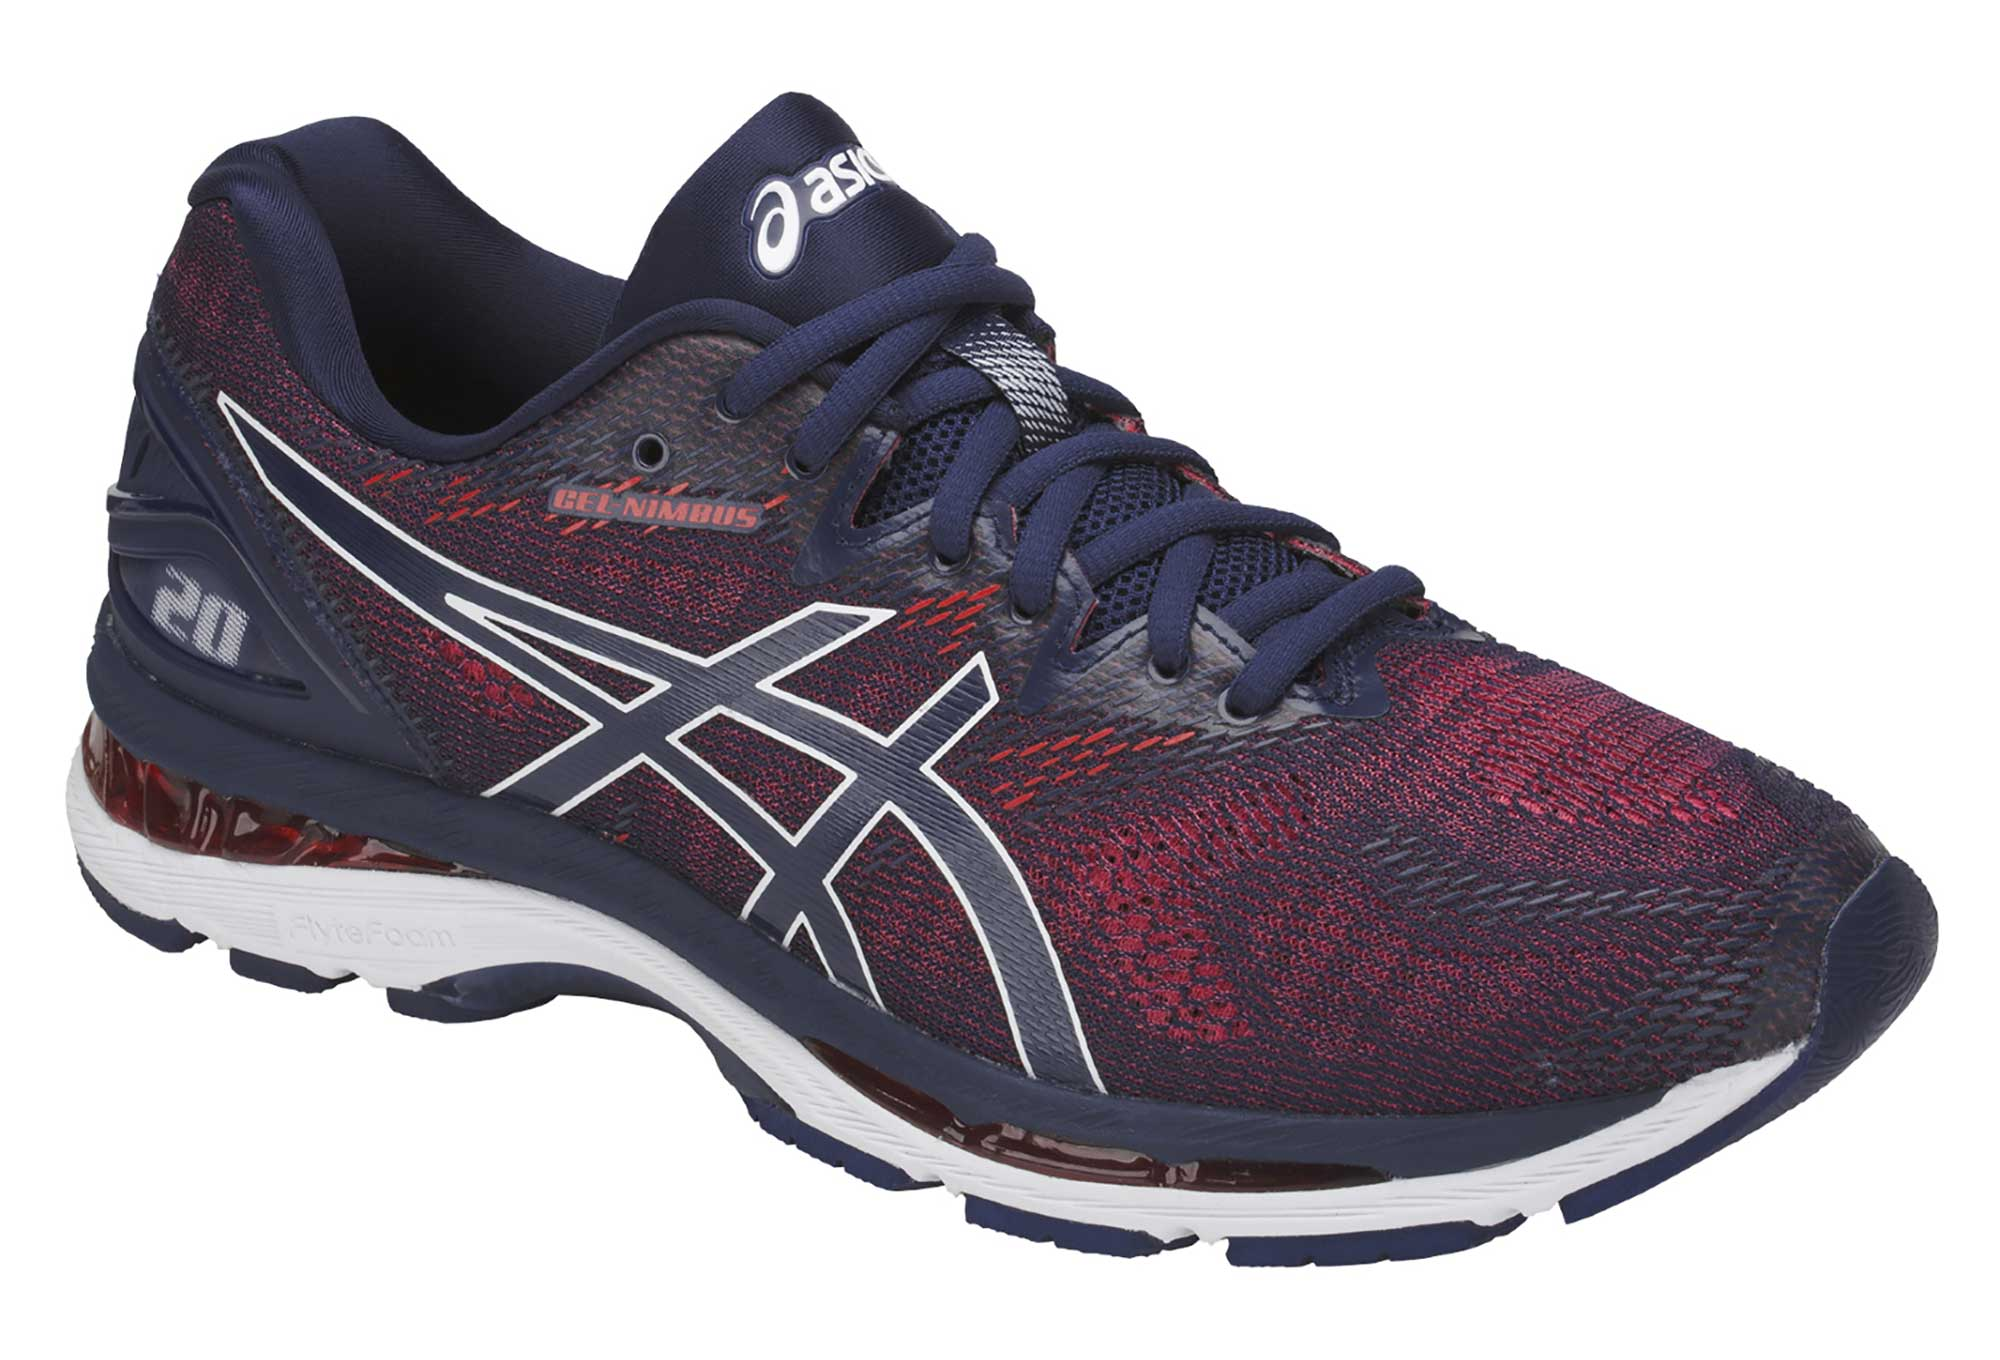 asics gel nimbus 20 blue red. Black Bedroom Furniture Sets. Home Design Ideas